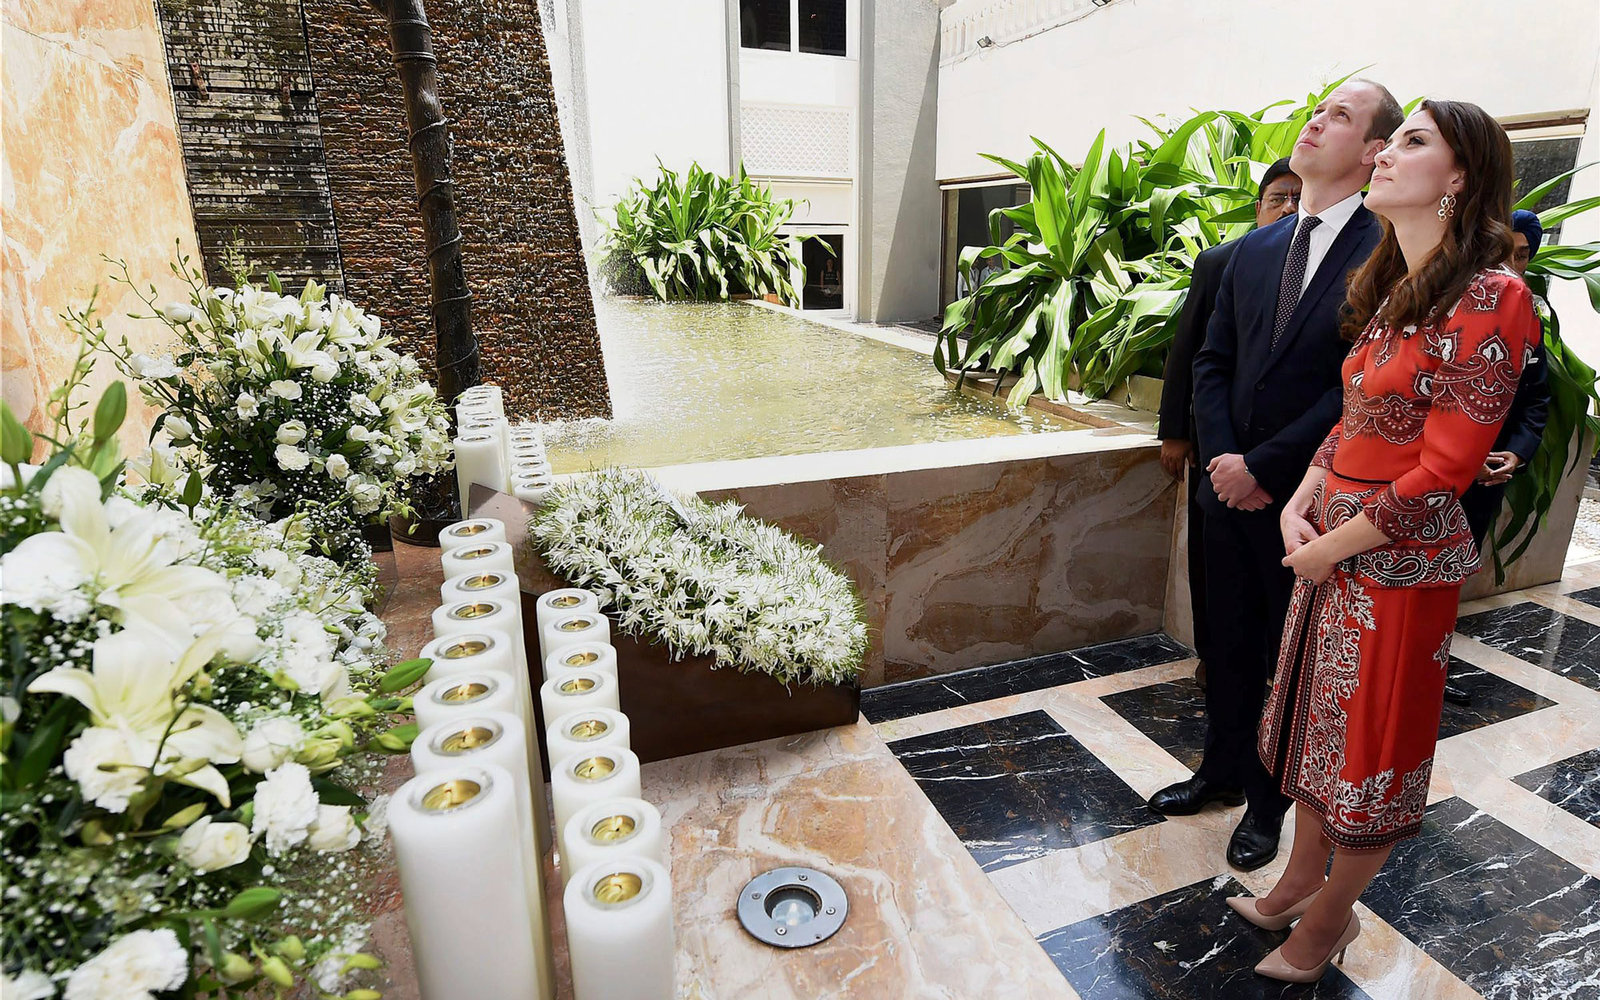 Britain's Prince William, Duke of Cambridge(C)and Catherine, Duchess of Cambridge(R)   